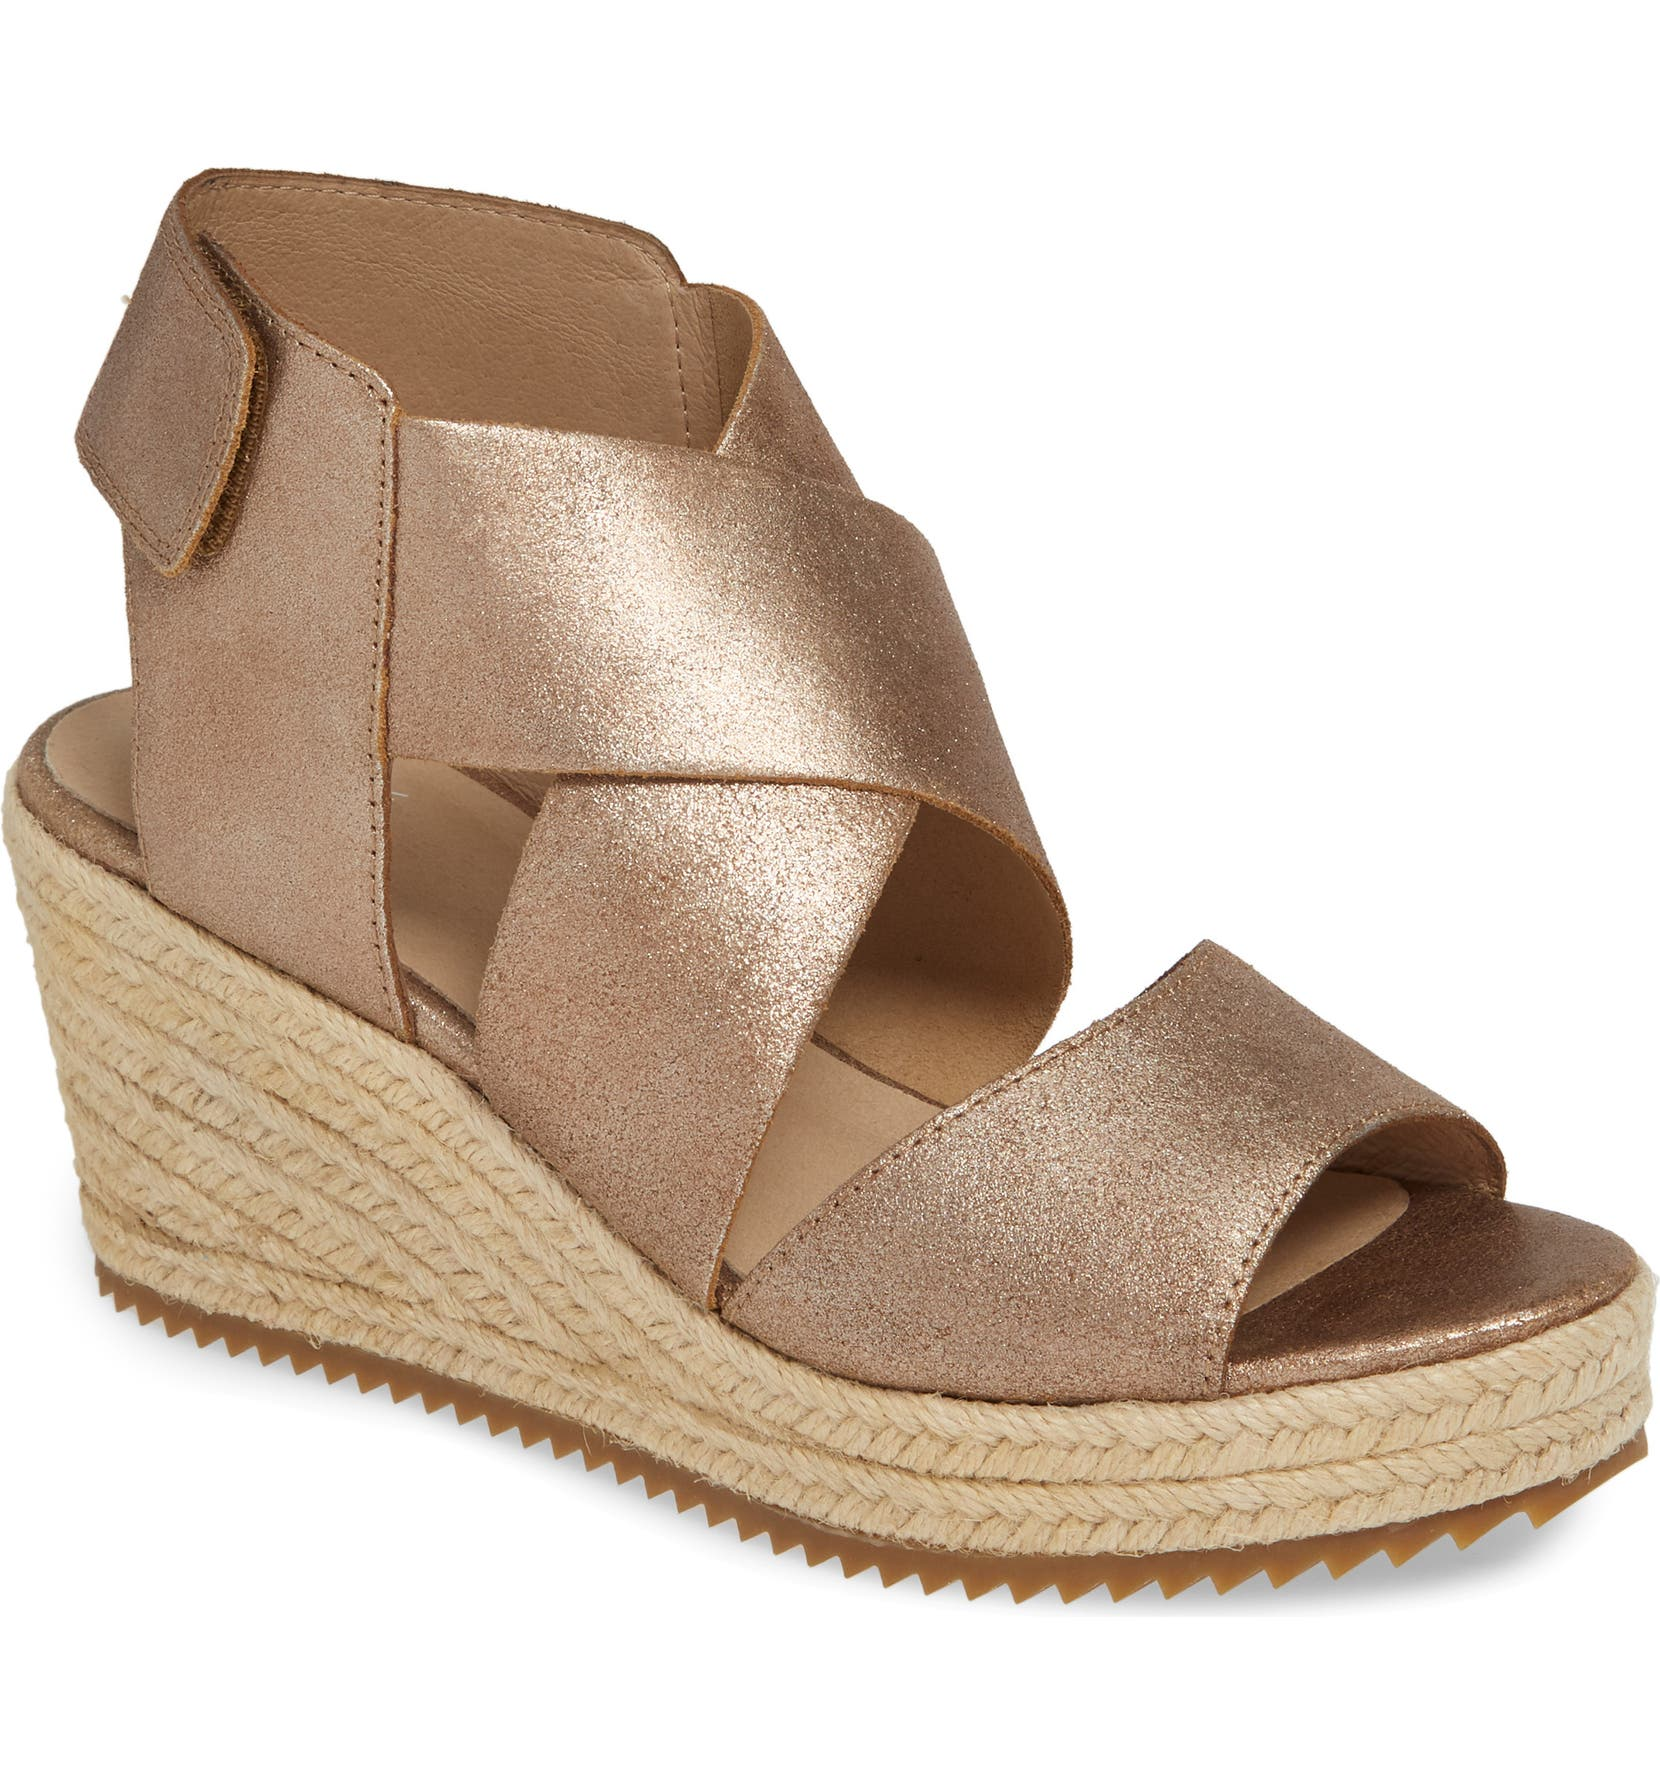 f74d6019a0c 'Willow' Espadrille Wedge Sandal